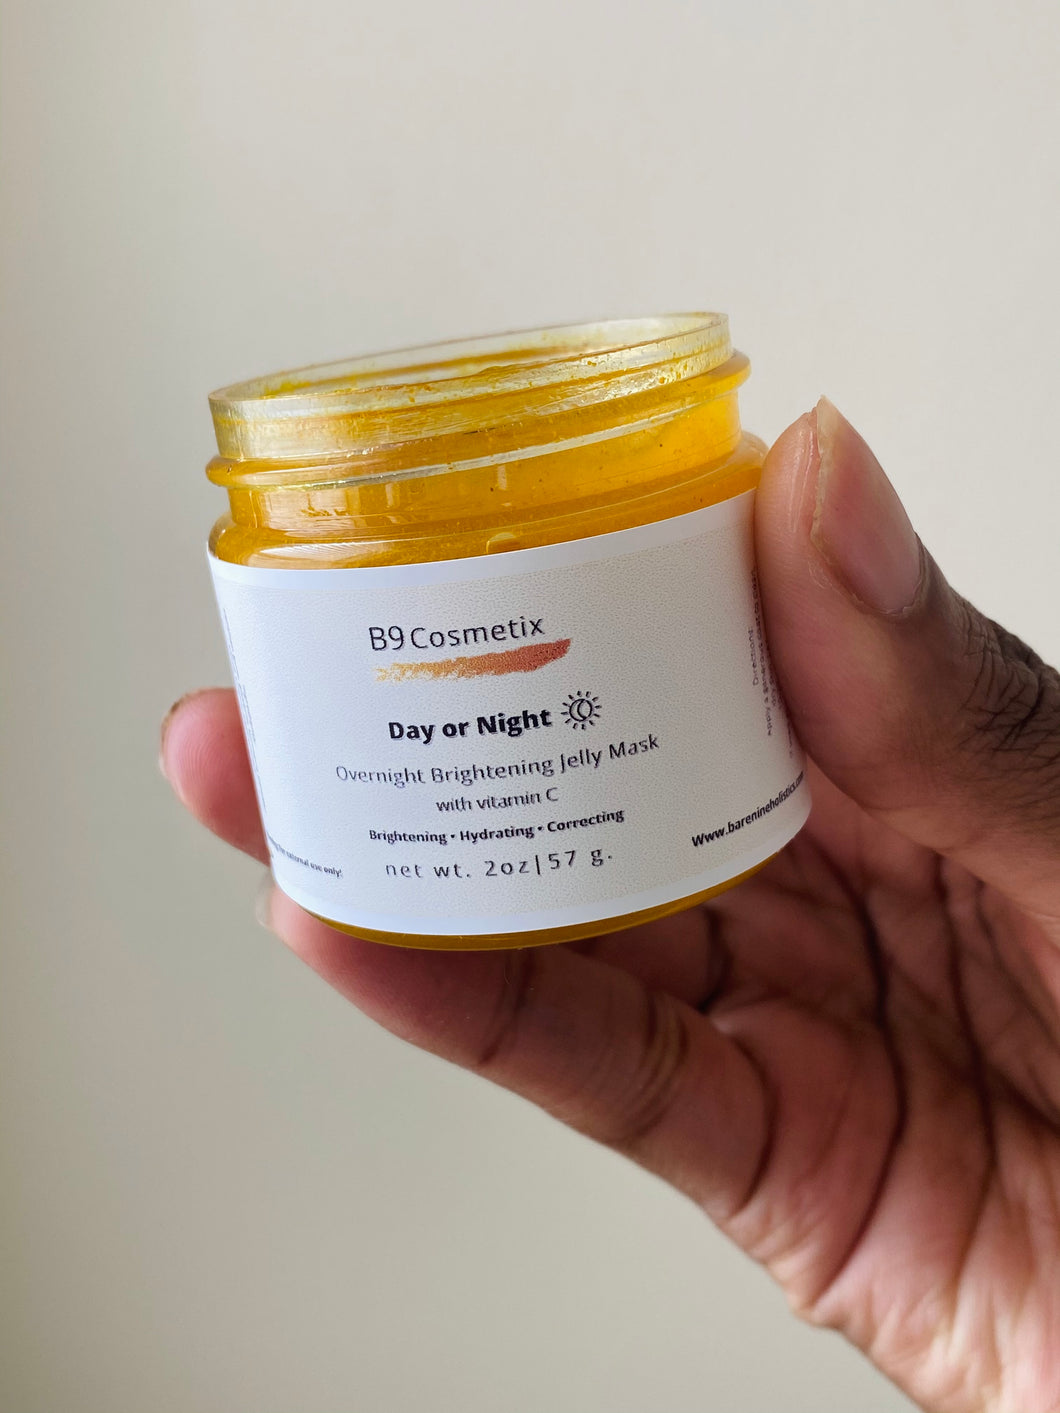 Day or Night: Overnight Brightening Jelly Mask